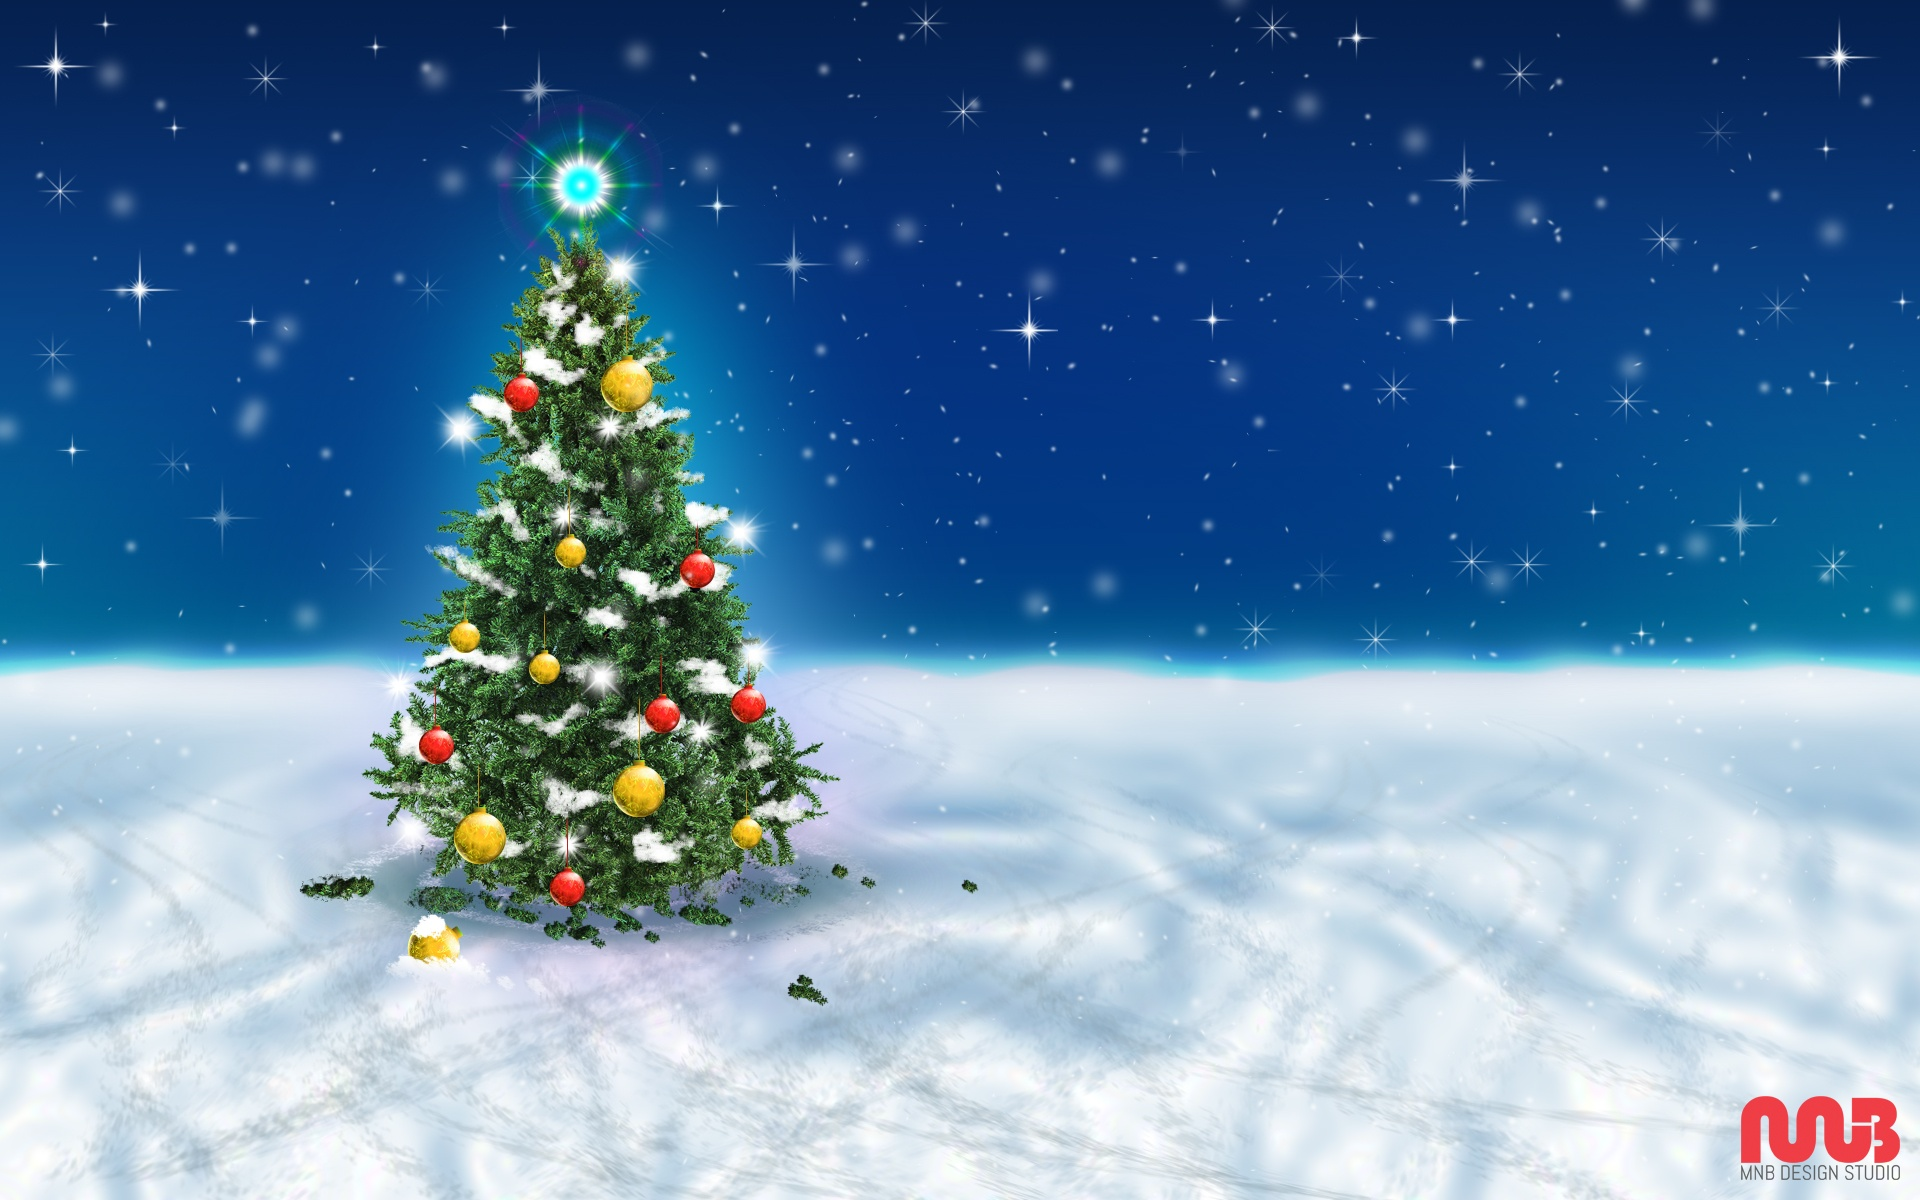 Christmas Tree Snow.Christmas Tree Snow Sky Wallpapers In Jpg Format For Free